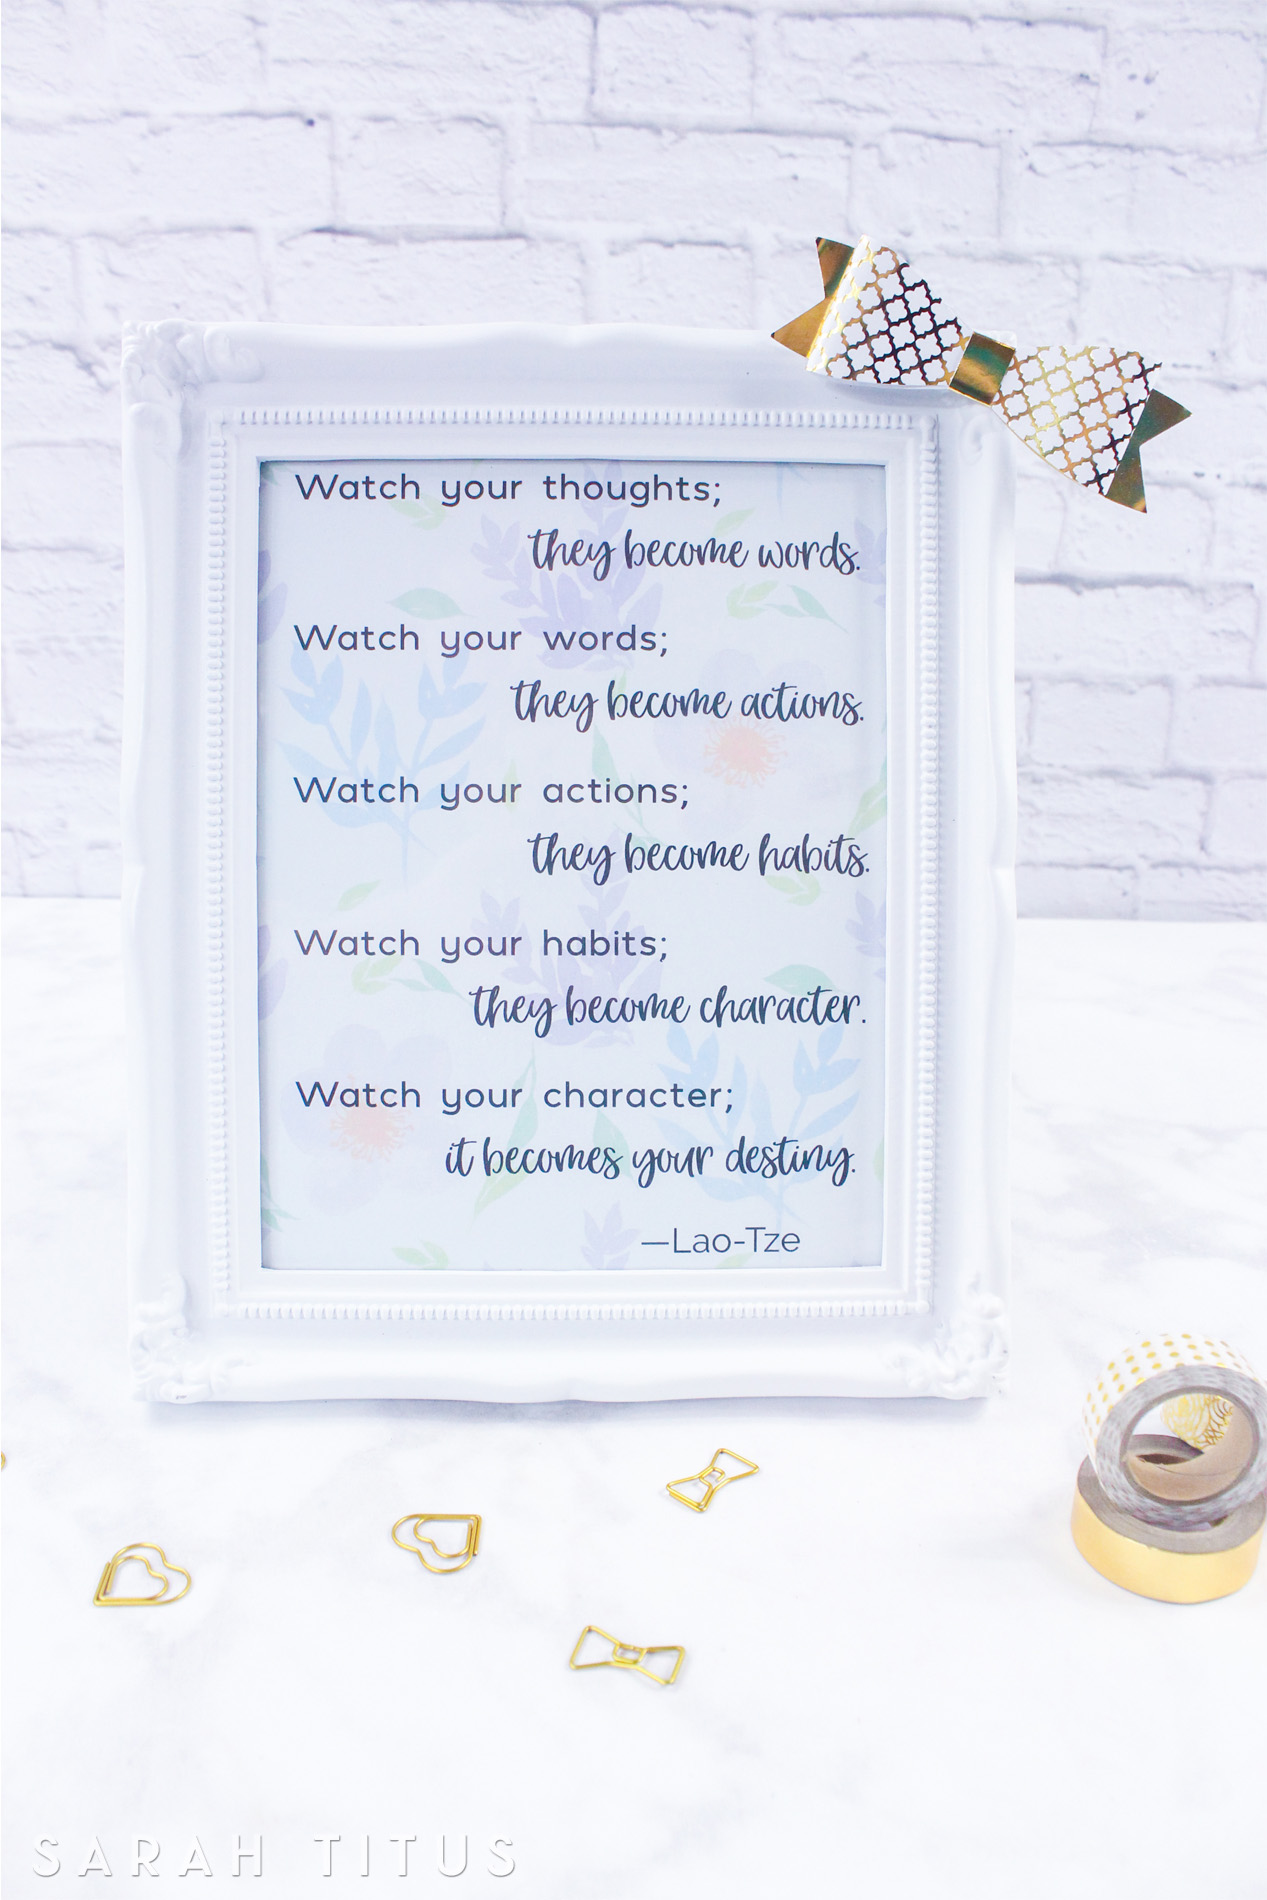 This is the perfect wall art printable to hang in your home to remind your family to watch their thoughts and words toward one another and treat each other with kindness.